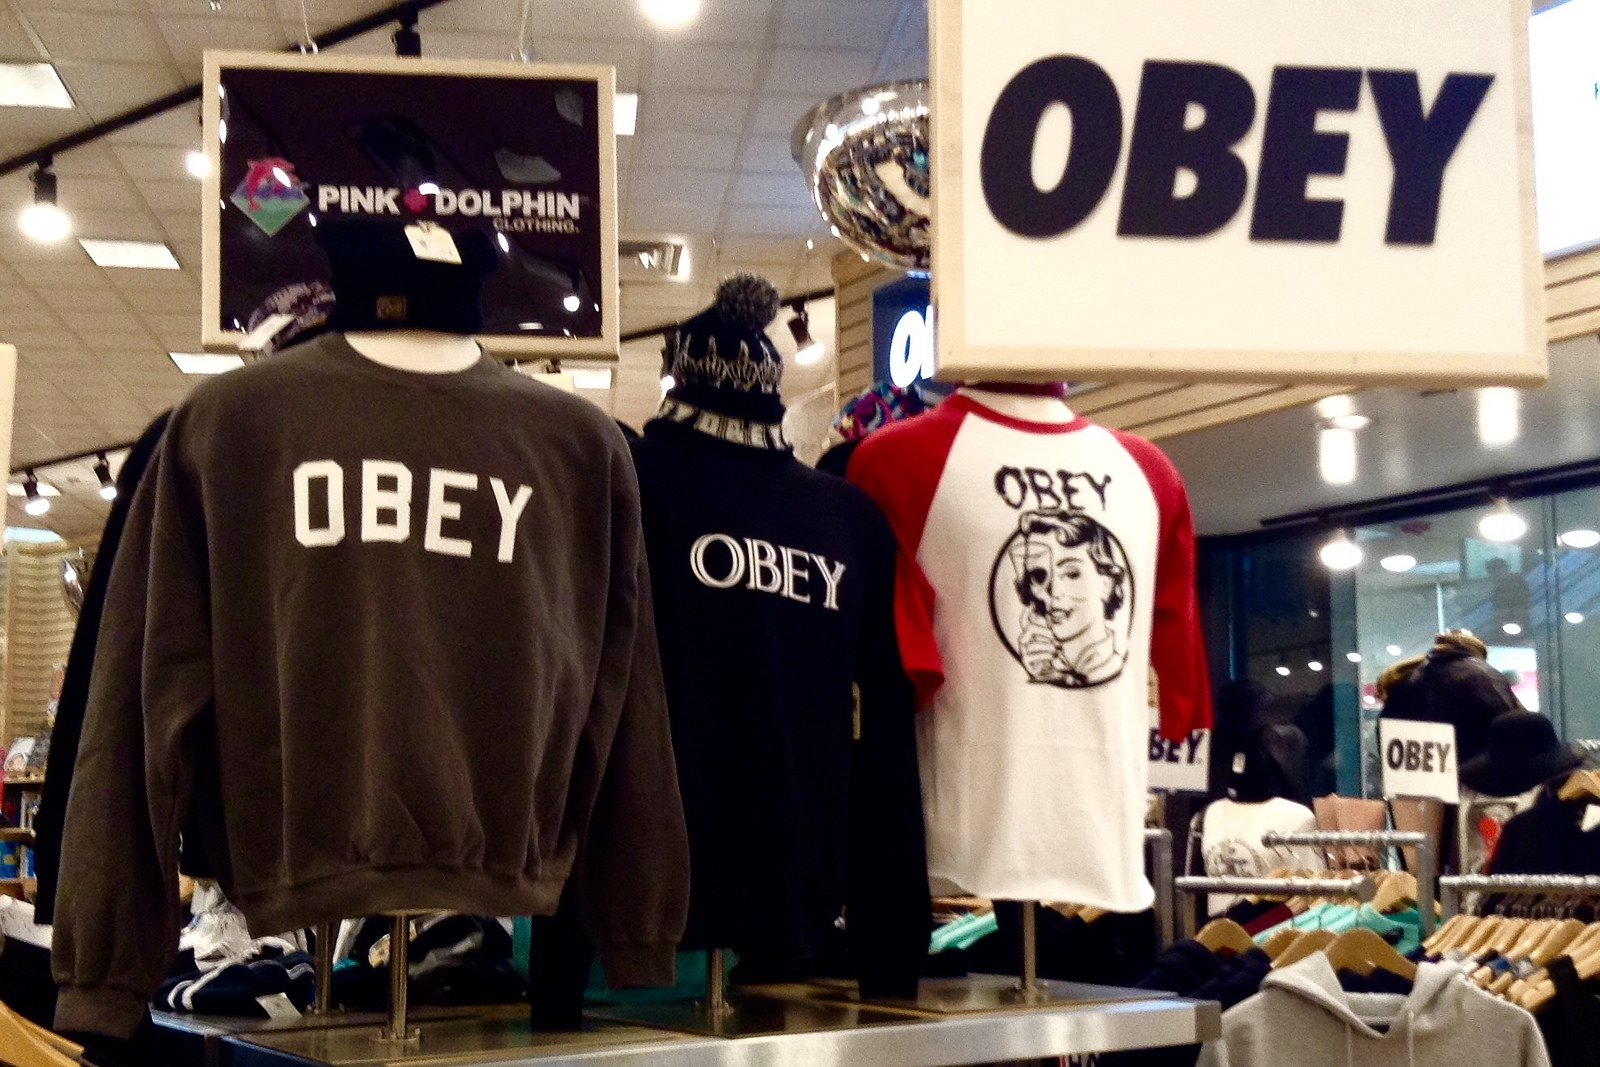 Obey Brand Clothing by Mike Mozart is licensed under CC BY 2.0